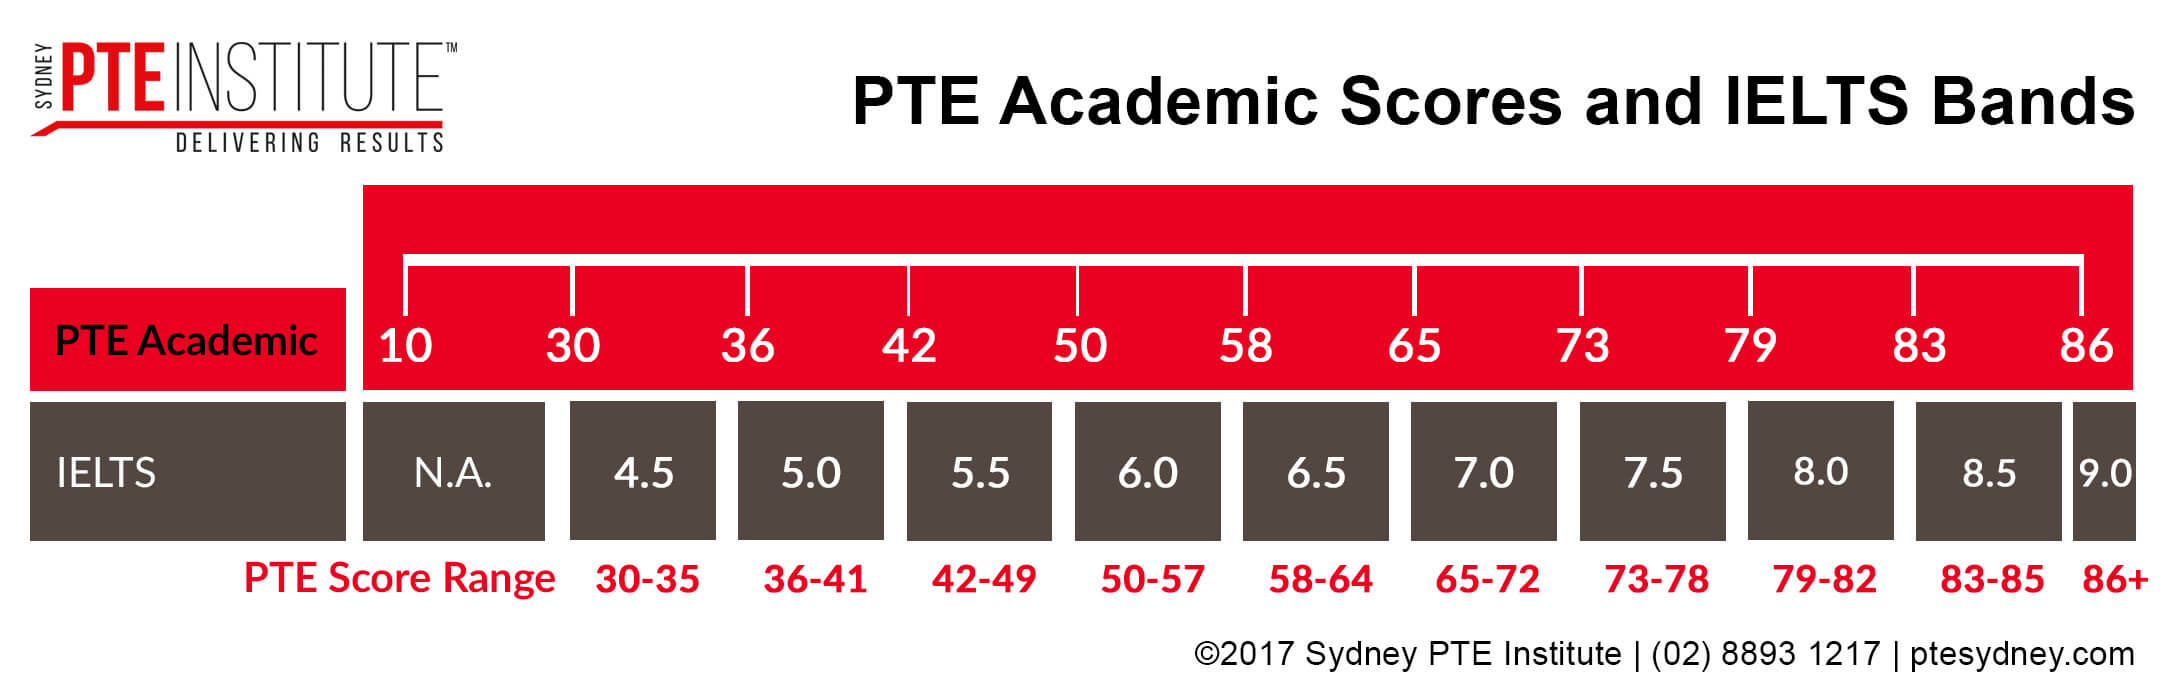 pte academic and ielts scores. sydney pte institute. parramatta and liverpool